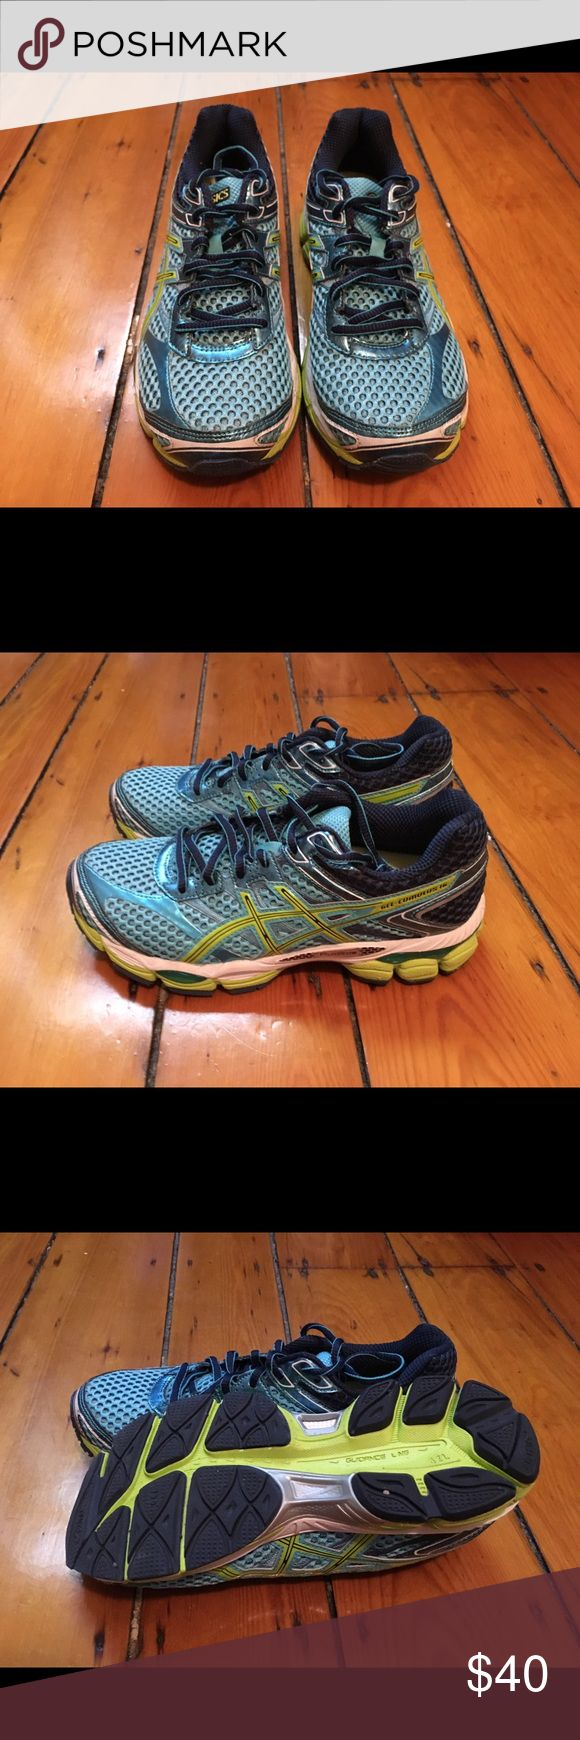 Asics Gel-Cumulus 16 Tried and true running shoe. Only worn once to try fit and test in a gym. Just like new. Asics Shoes Athletic Shoes